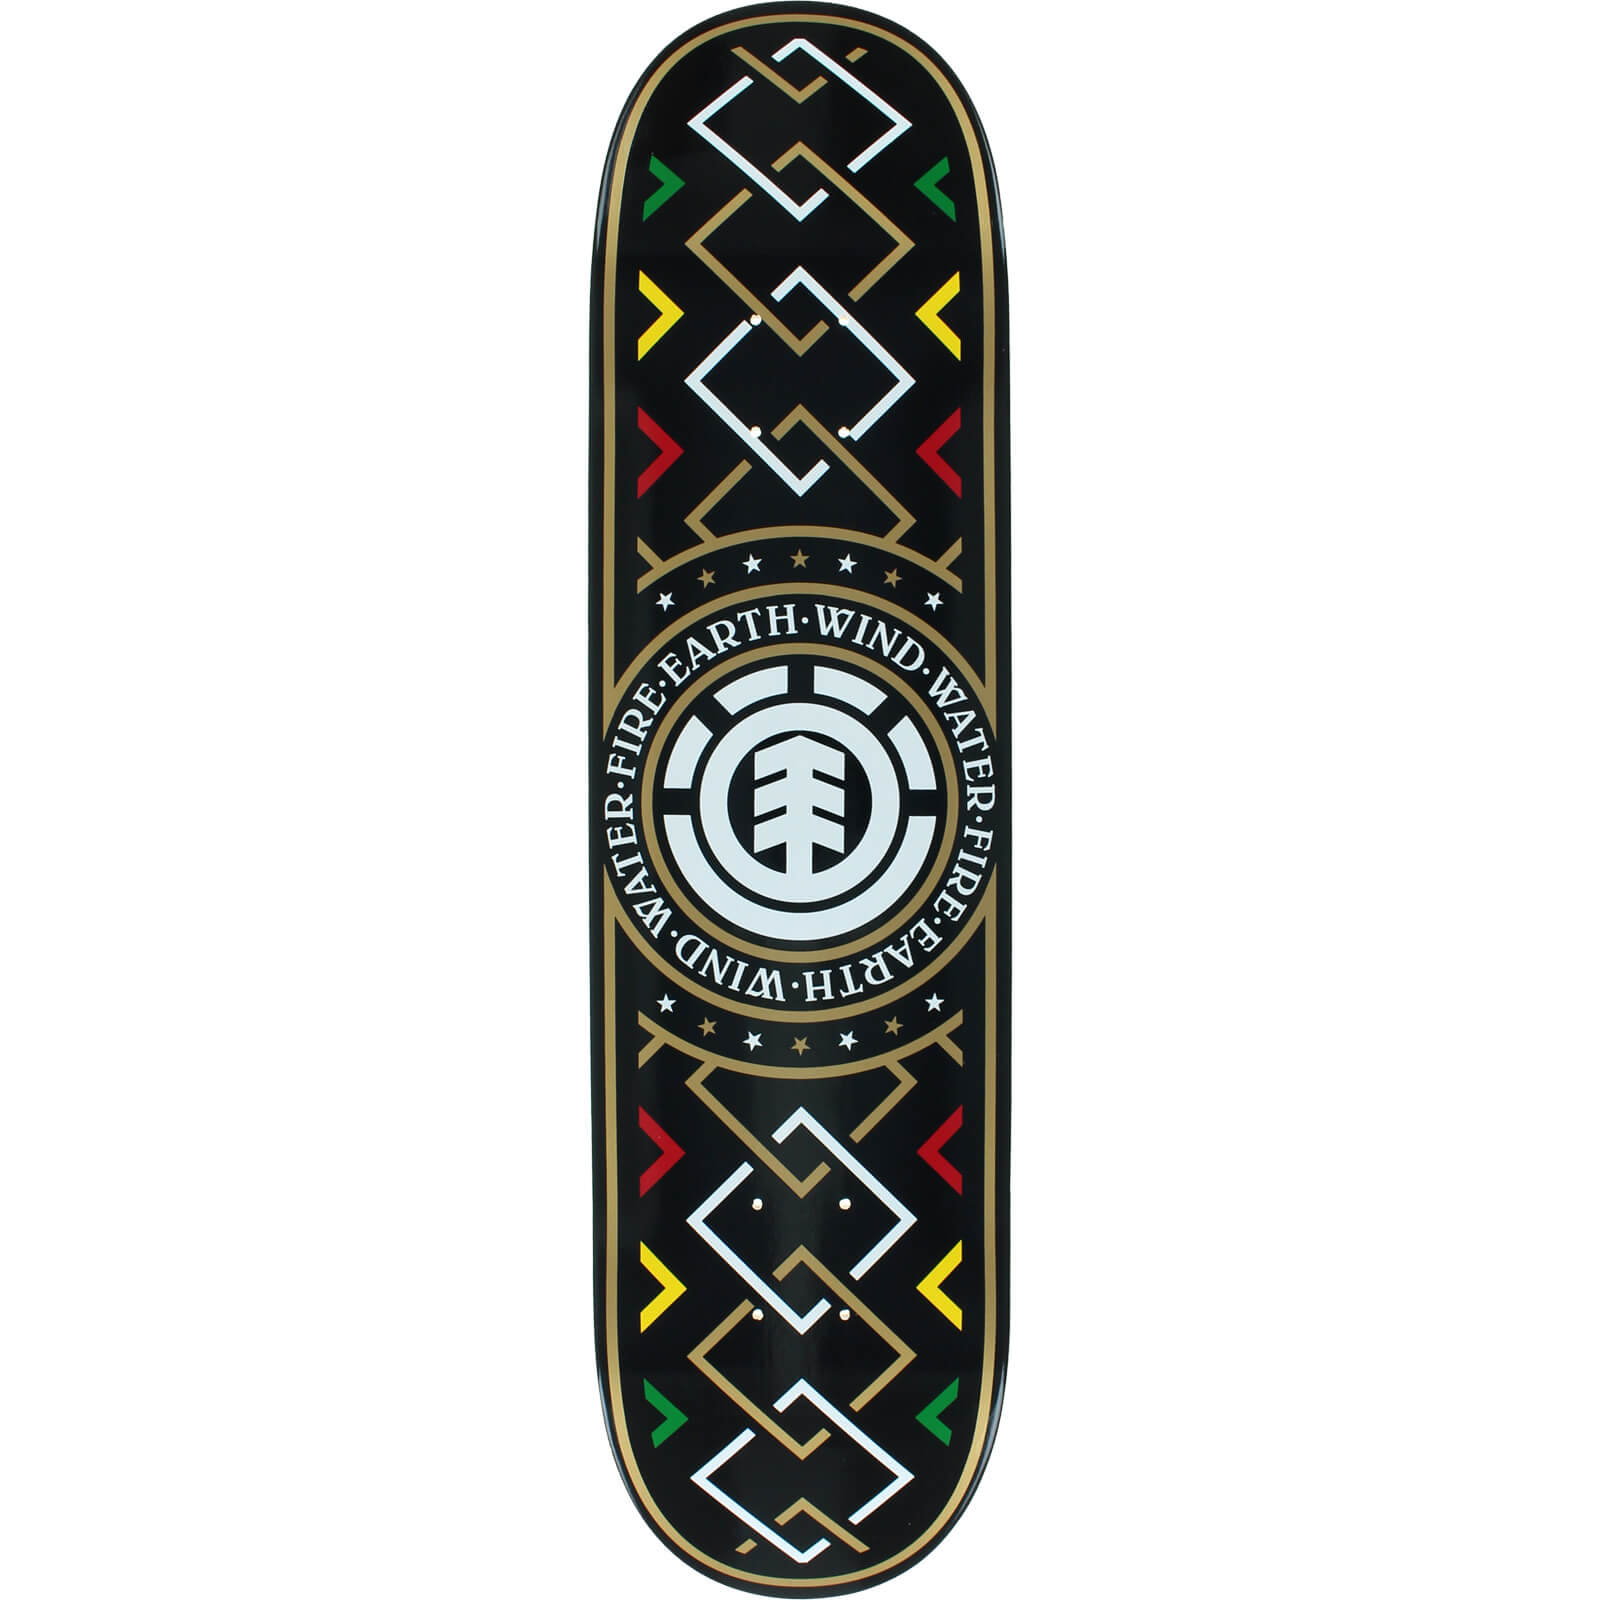 Skateboard Skateboard Element Skateboards Featherlight Link Skateboard Deck 8